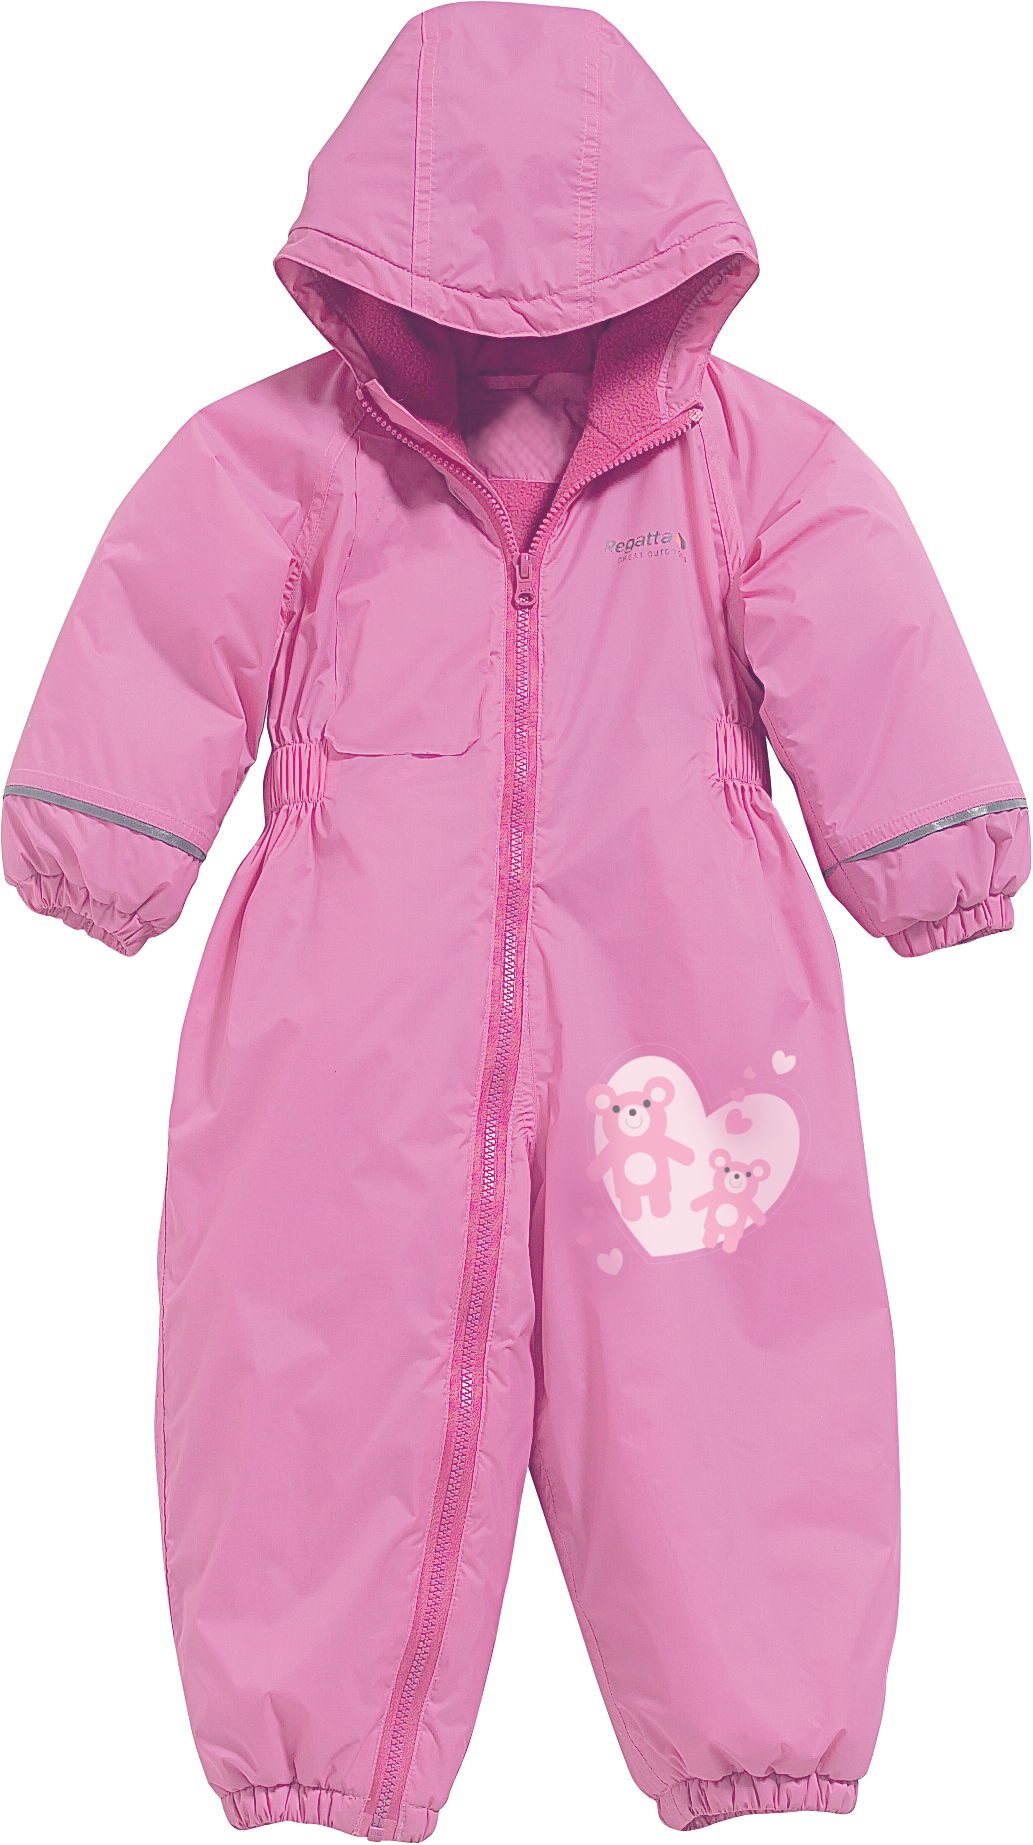 Regatta Splosh Toddler's Insulated Suit - Lipstick